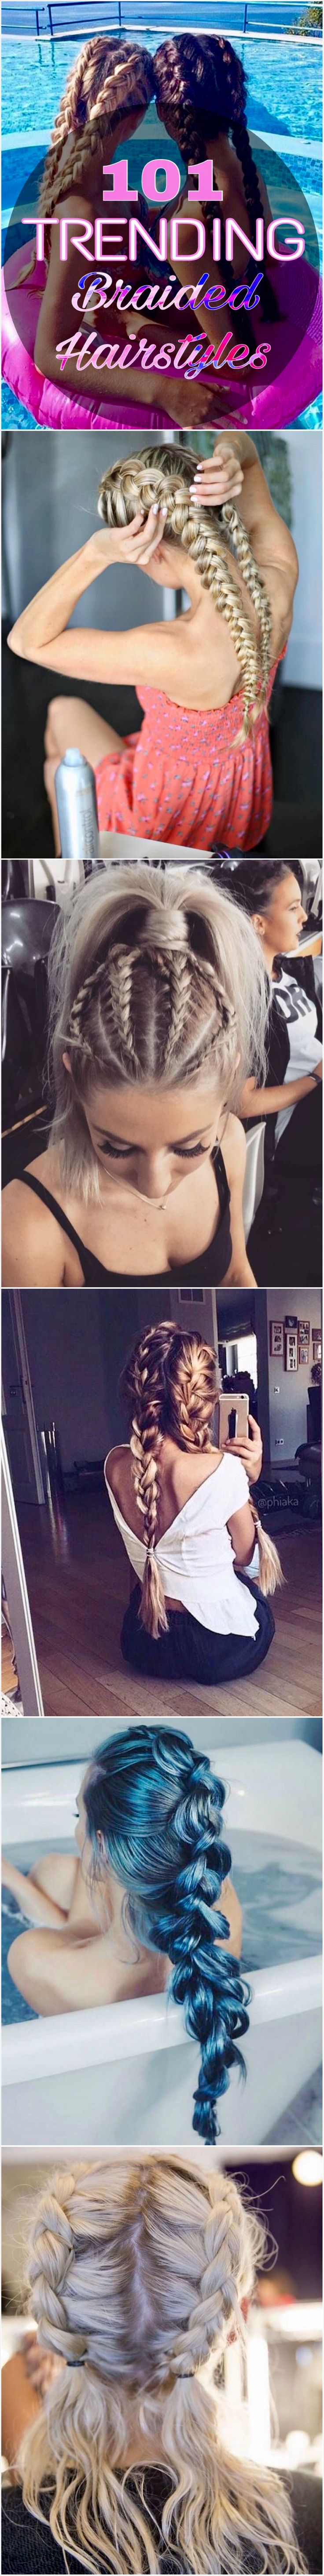 Braided hairstyles trending on Pinterest and Instagram right now. Creative: Styl...